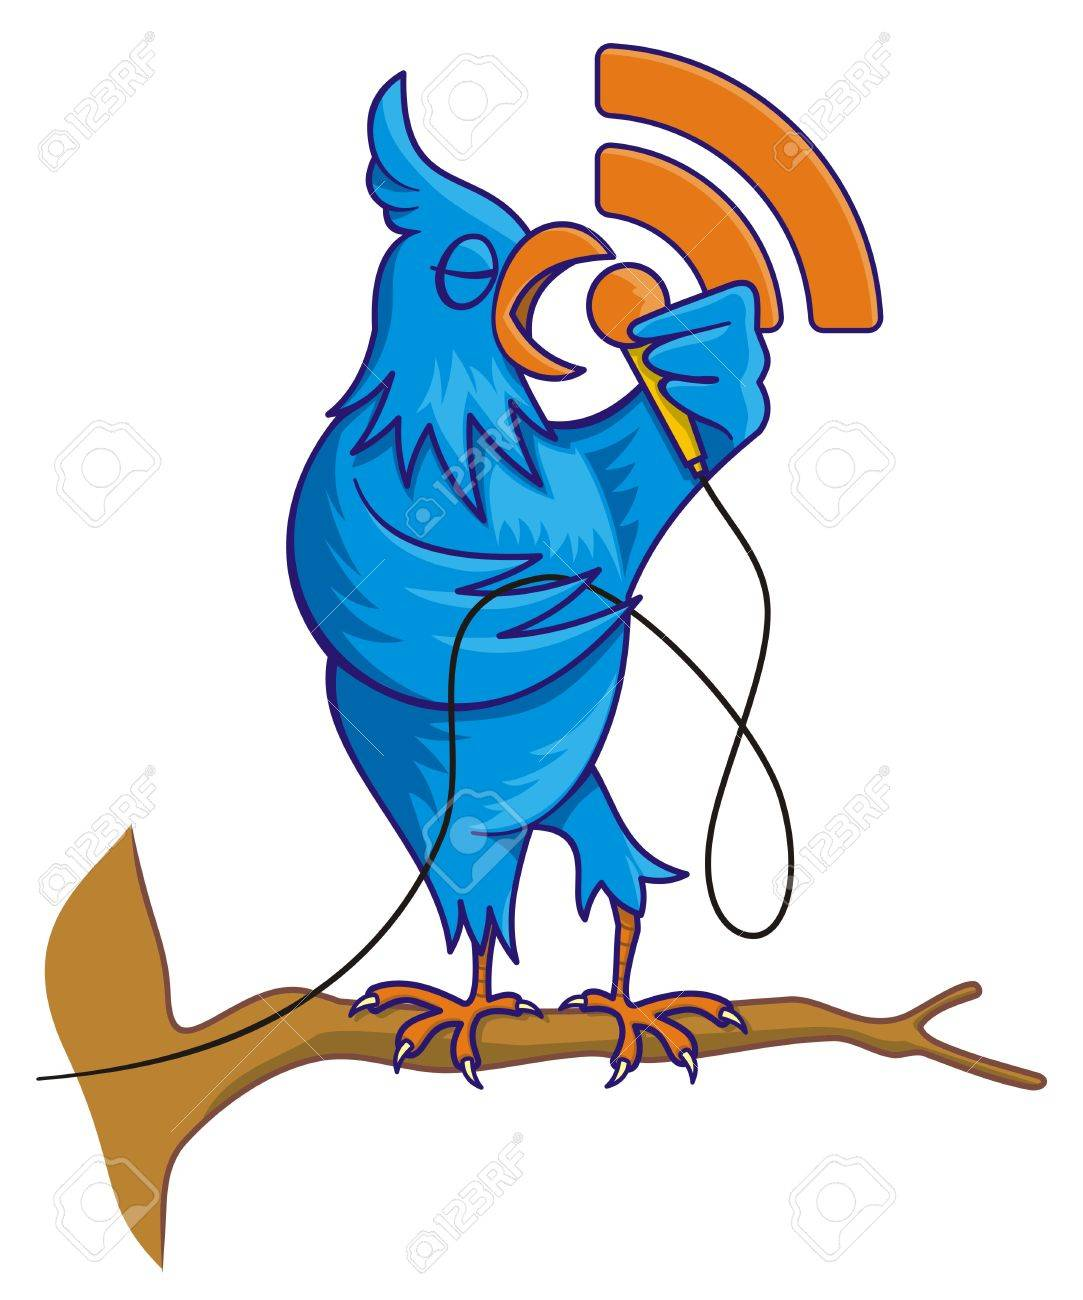 Cartoon illustration of blue bird on a tree branch singing with RSS icon - 5821935